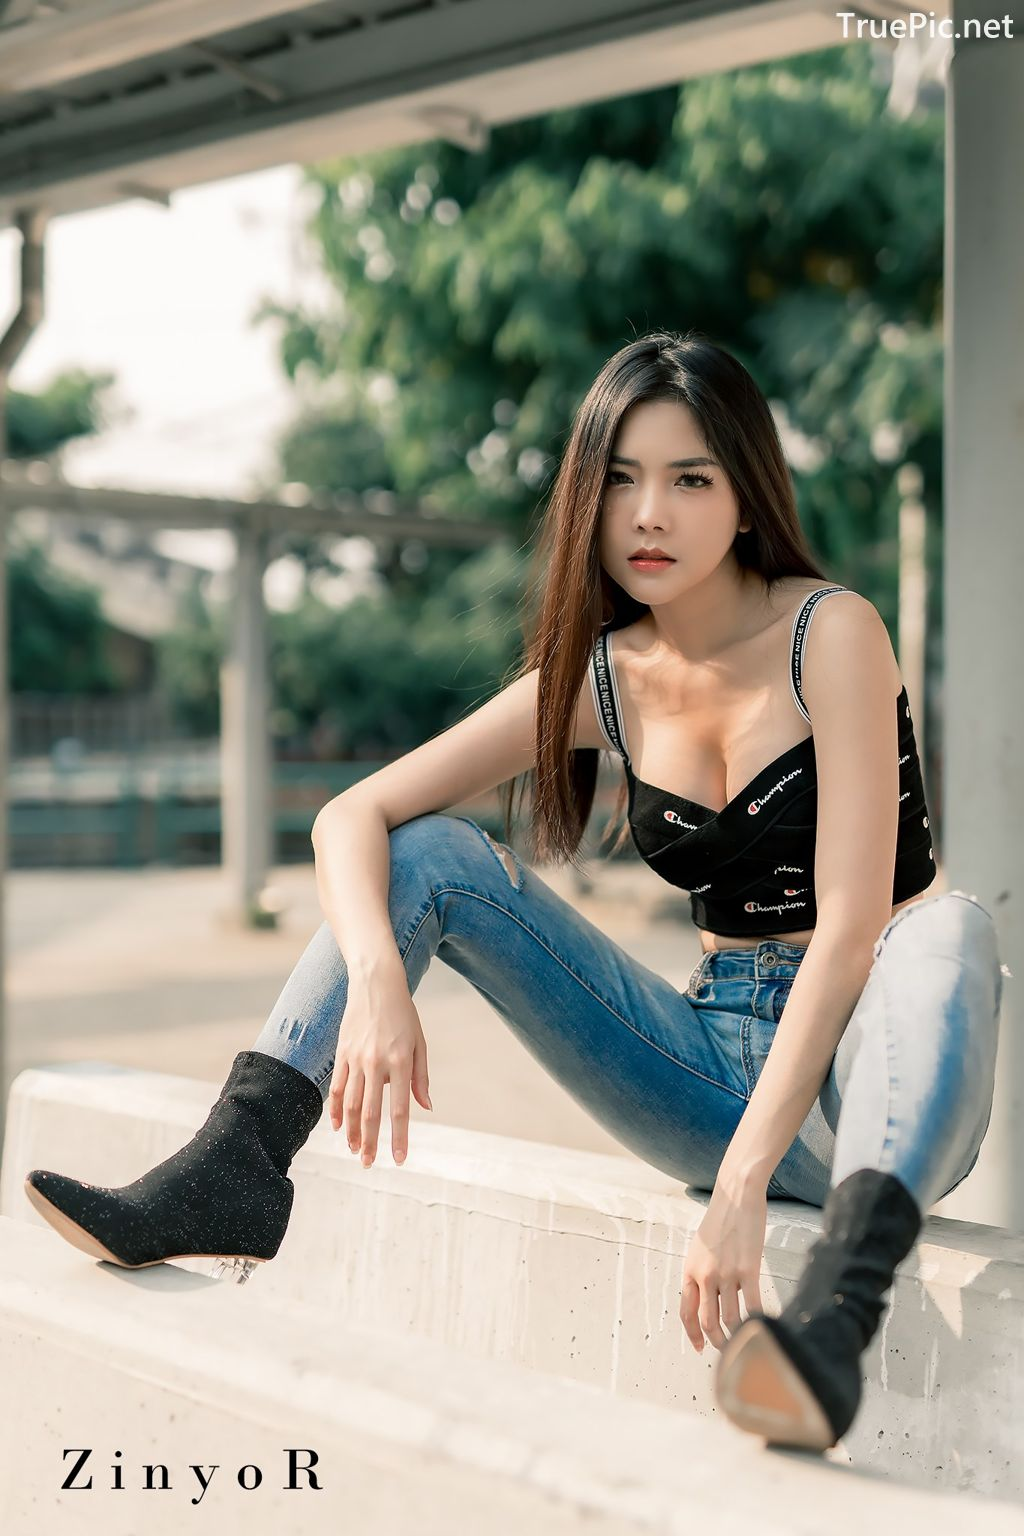 Image-Thailand-Model-Phitchamol-Srijantanet-Black-Crop-Top-and-Jean-TruePic.net- Picture-3